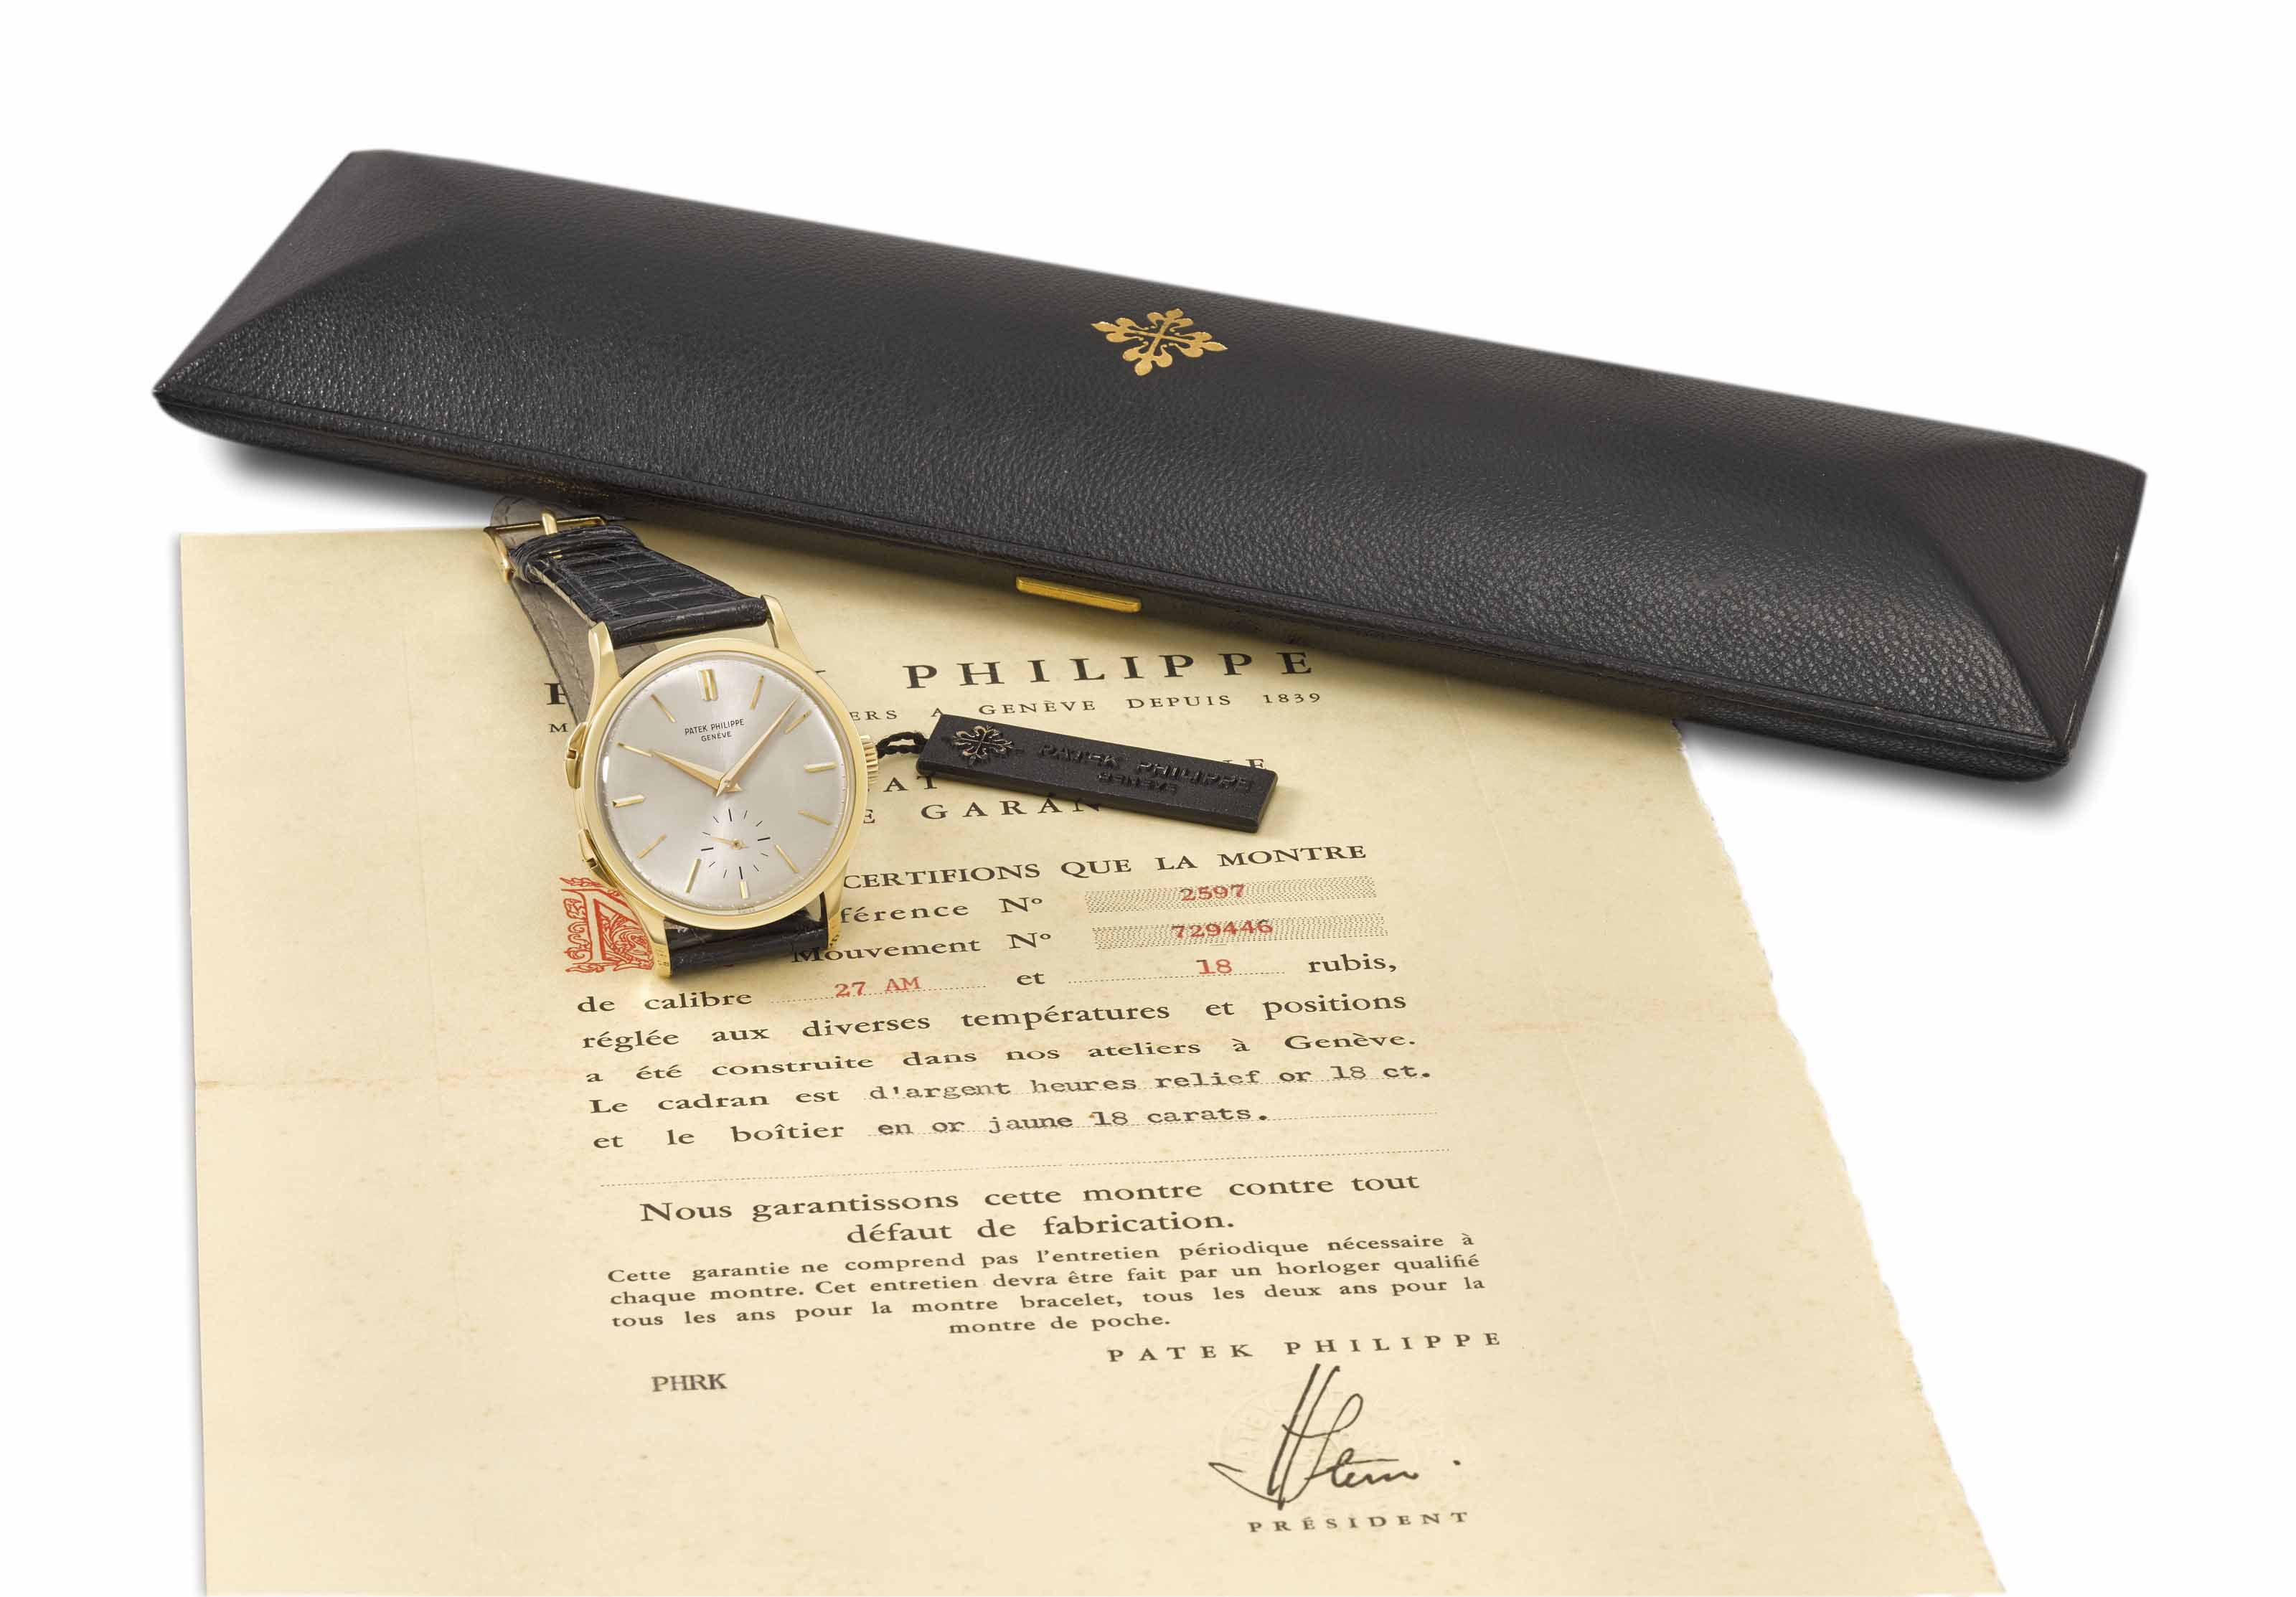 Patek Philippe. An extremely fine and very rare 18K gold dual time zone wristwatch with separately adjustable hour hand, Certificate of Origin, envelope, sales tag and box